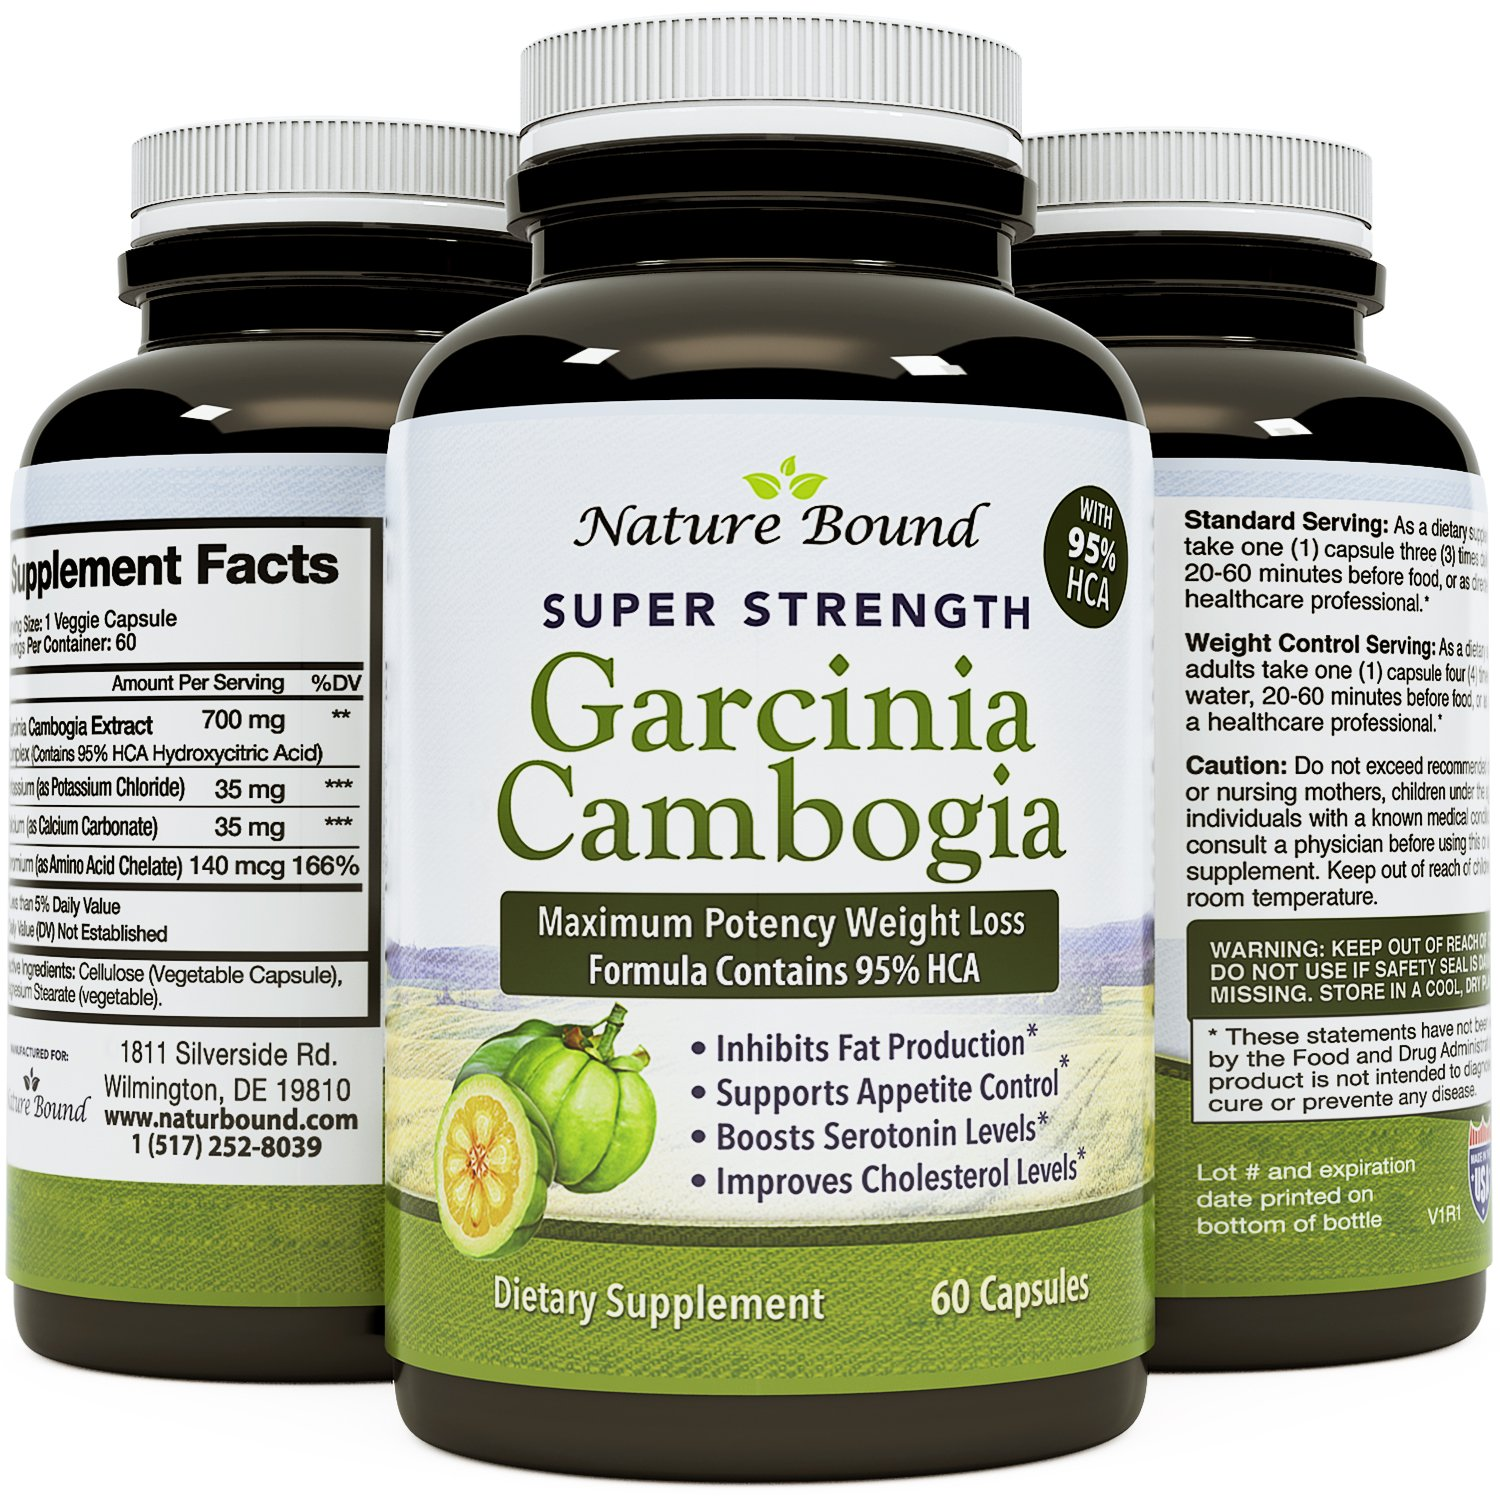 95% HCA Garcinia Cambogia Supplement Natural Weight Loss Pills - Pure Garcinia Extract Fat Burner for Men & Women Block Carbs Suppress Appetite Boost Metabolism and Energy Support - Nature Bound